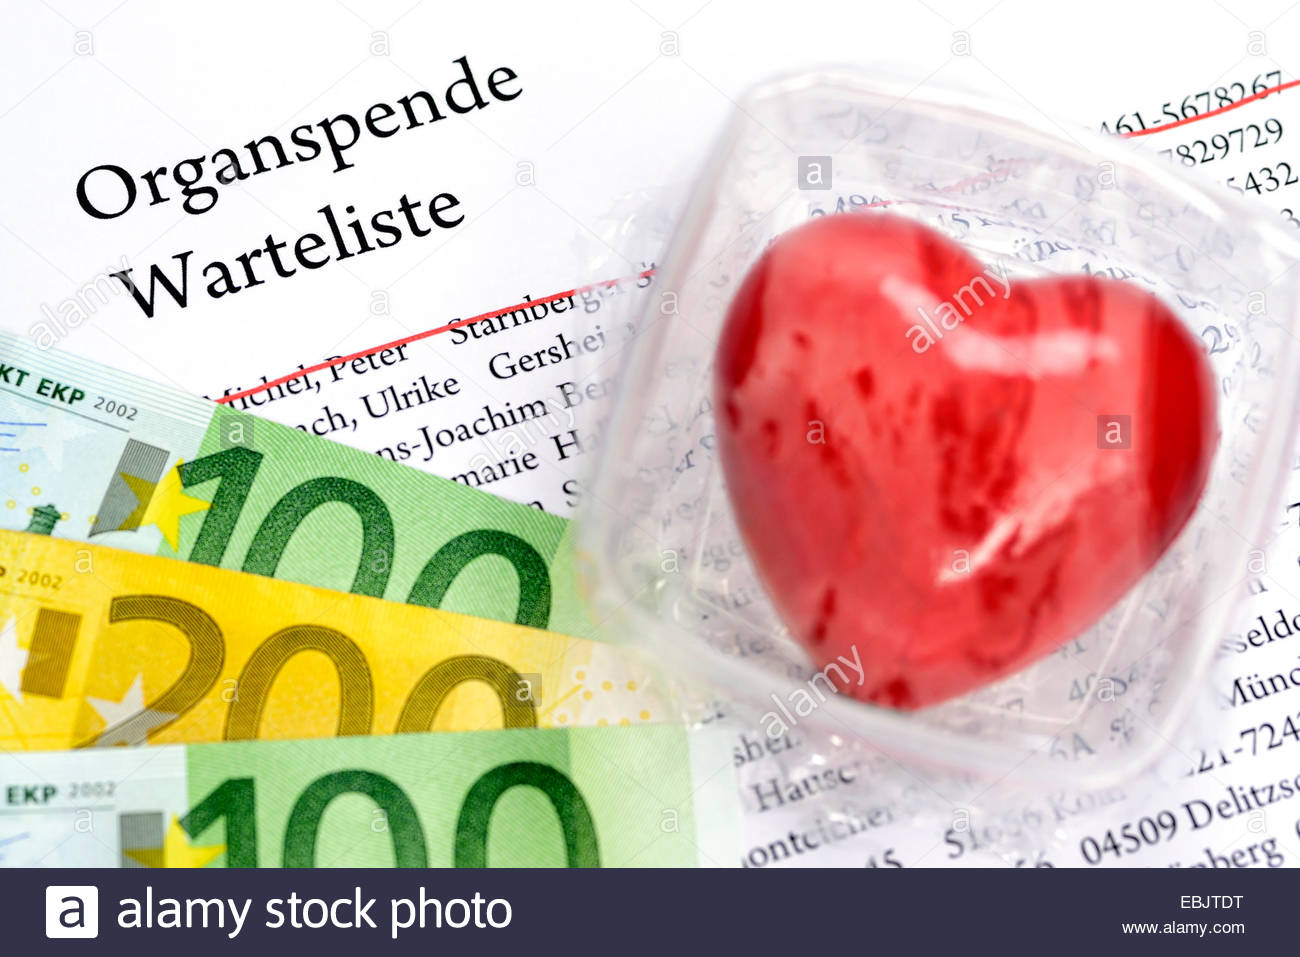 symbol picture 'organ donation cheat': heart in a food storage box, waiting list and Euro bills - Stock Image